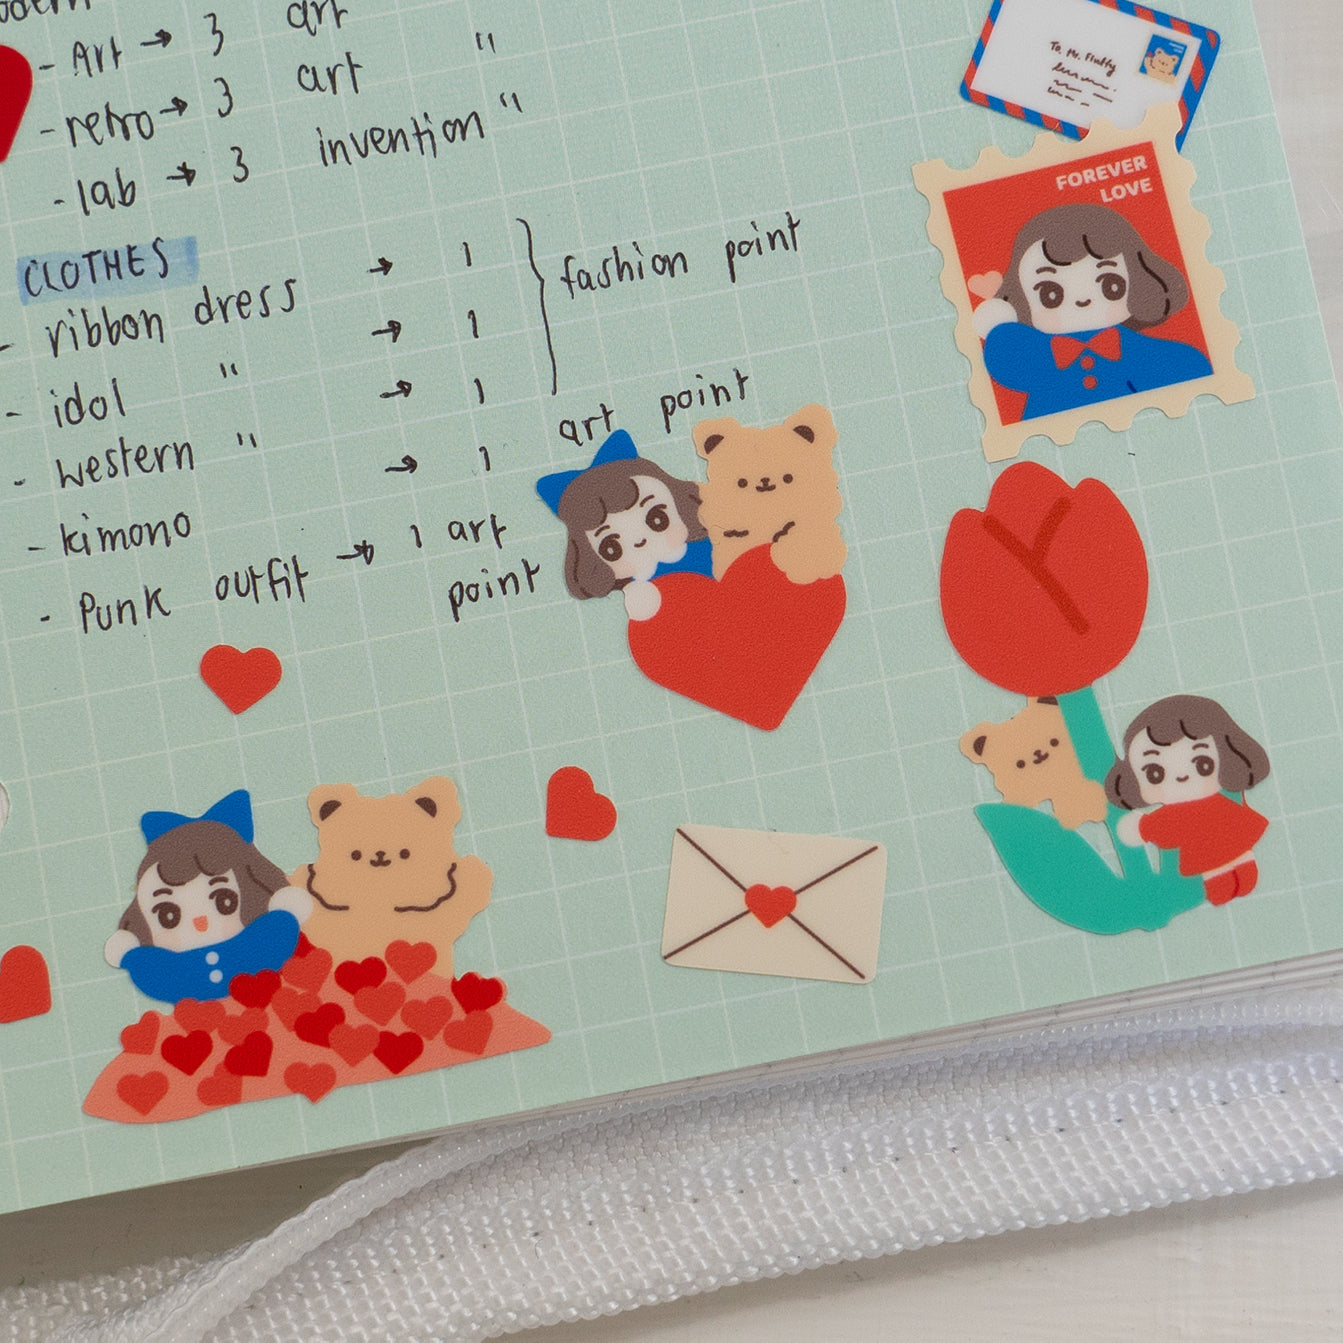 A41-Mail me love sticker sheet